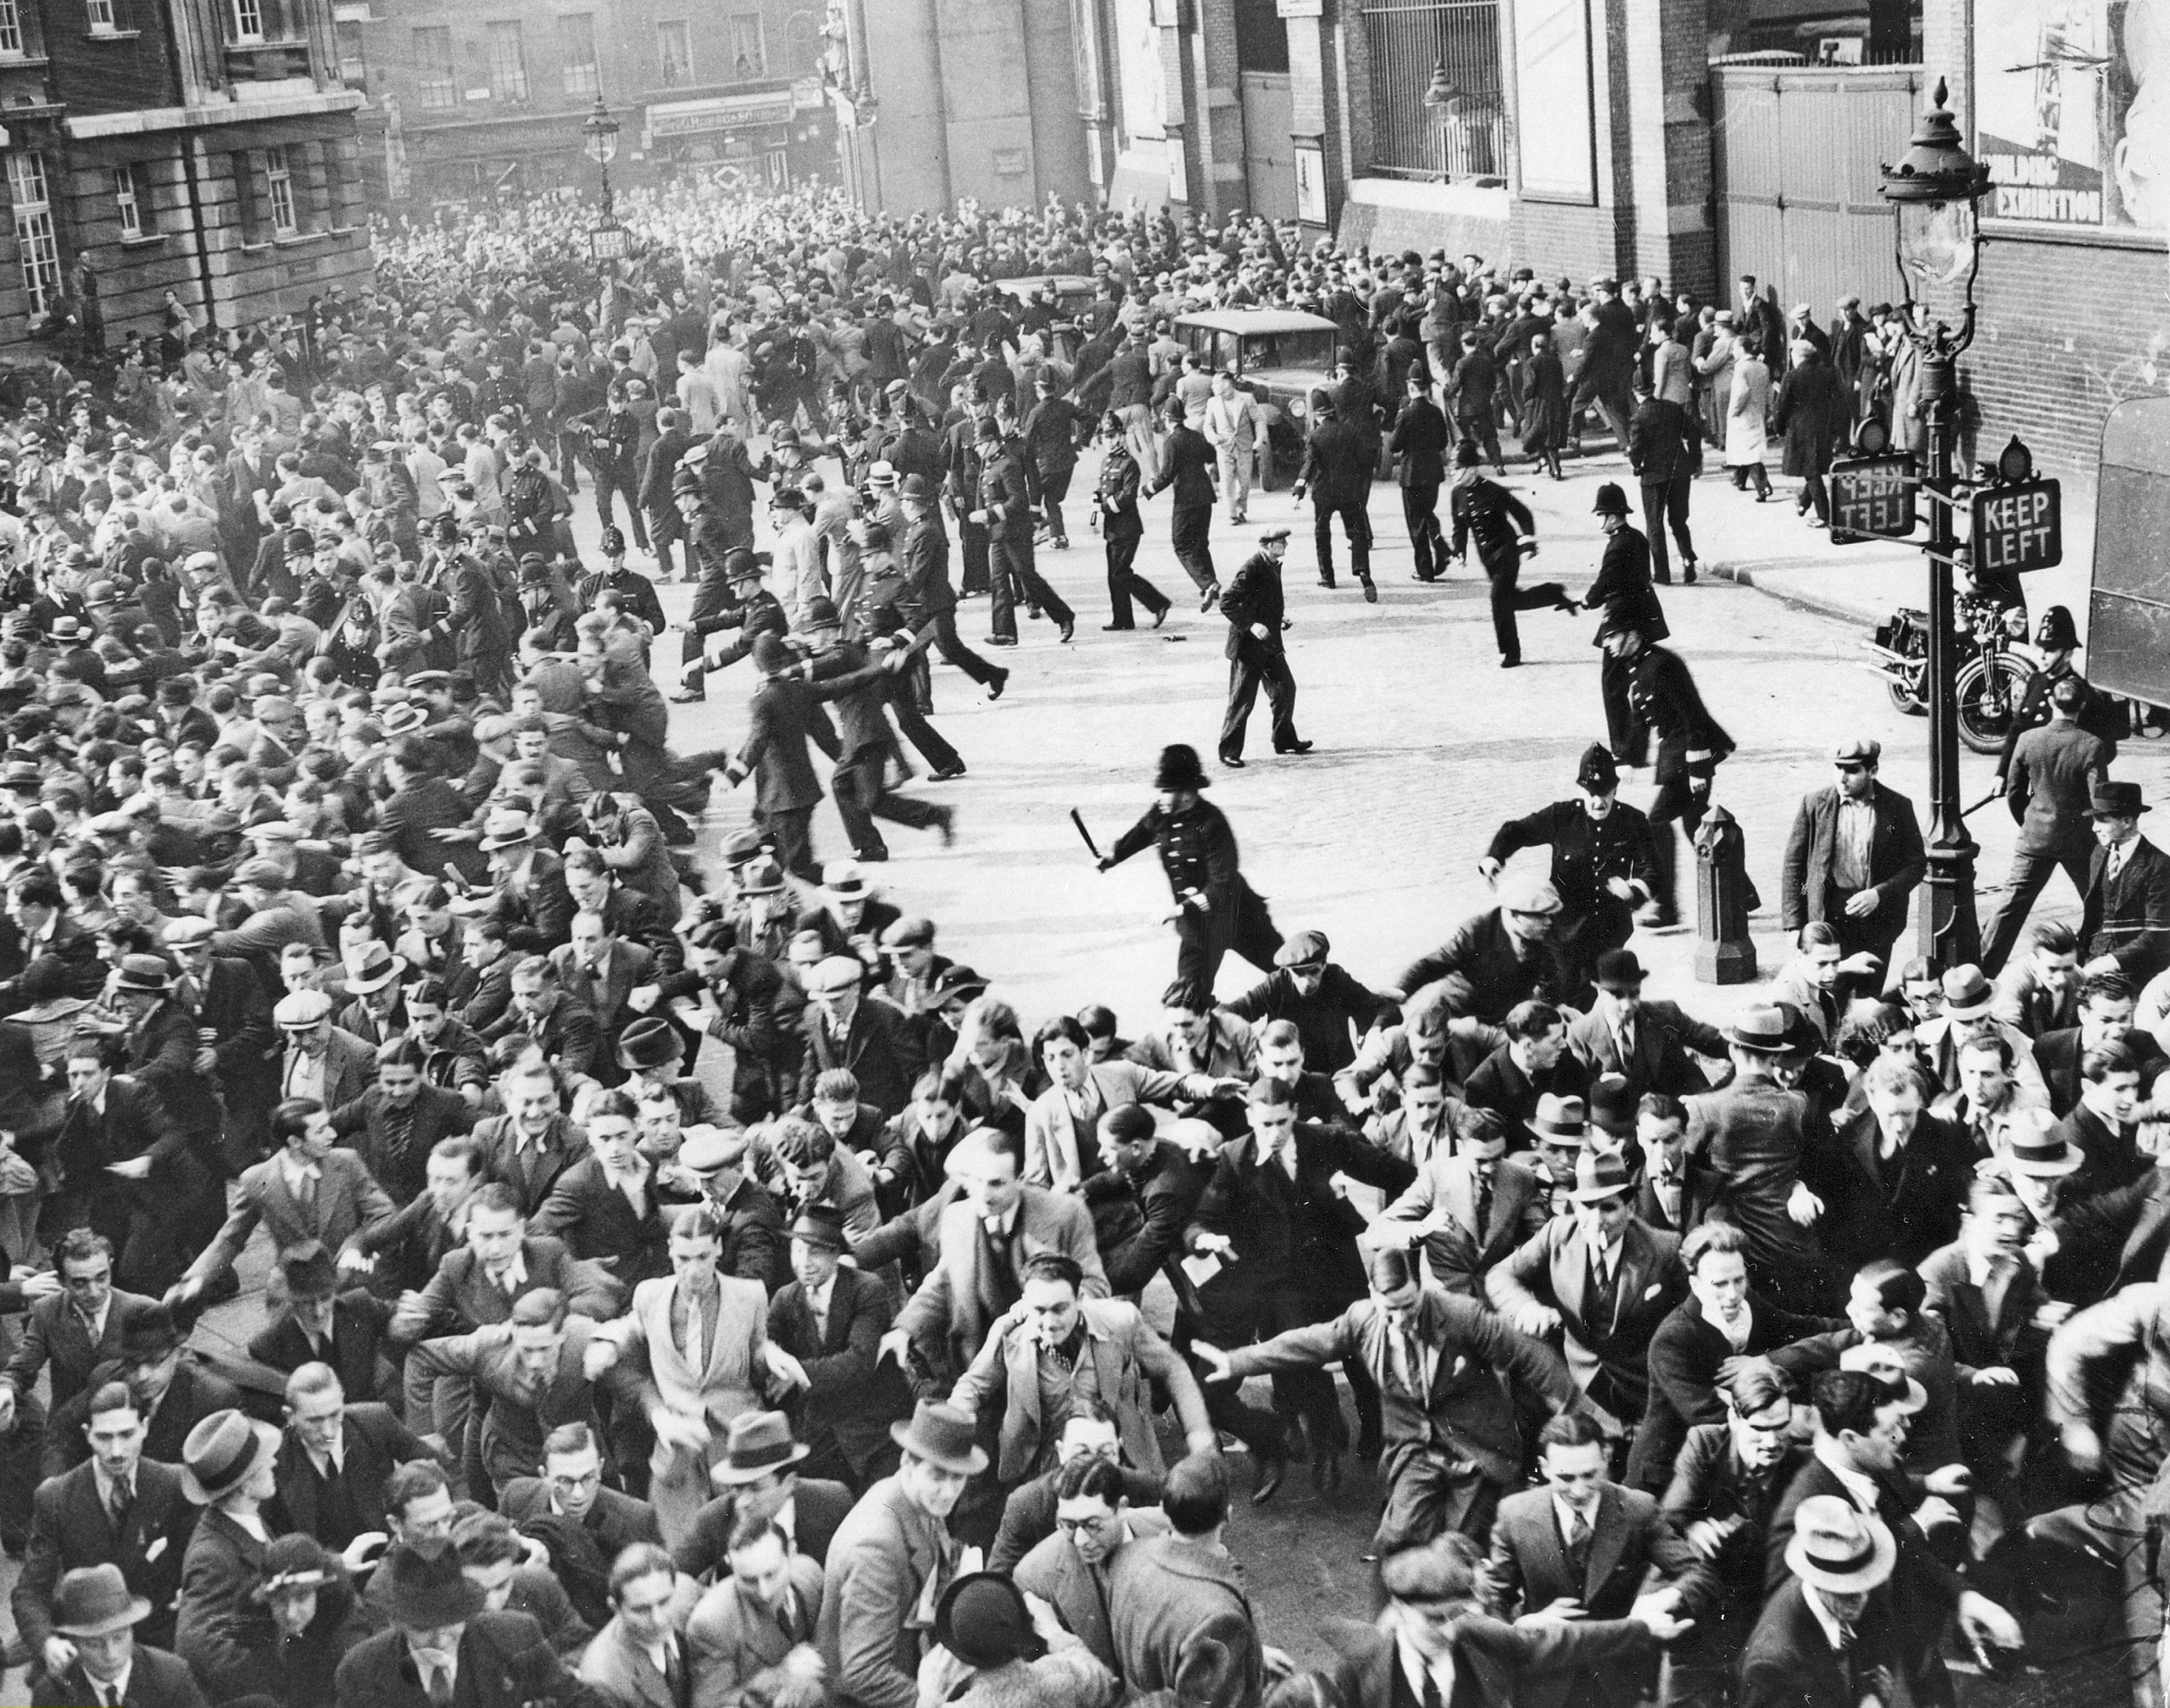 Riots erupted between anti-Fascists and Blackshirts (British Fascists) when Mosley's supporters were gathering in Great Mint Street for a march through the East End of London in what is now called the Battle of Cable Street on Oct. 4, 1936.